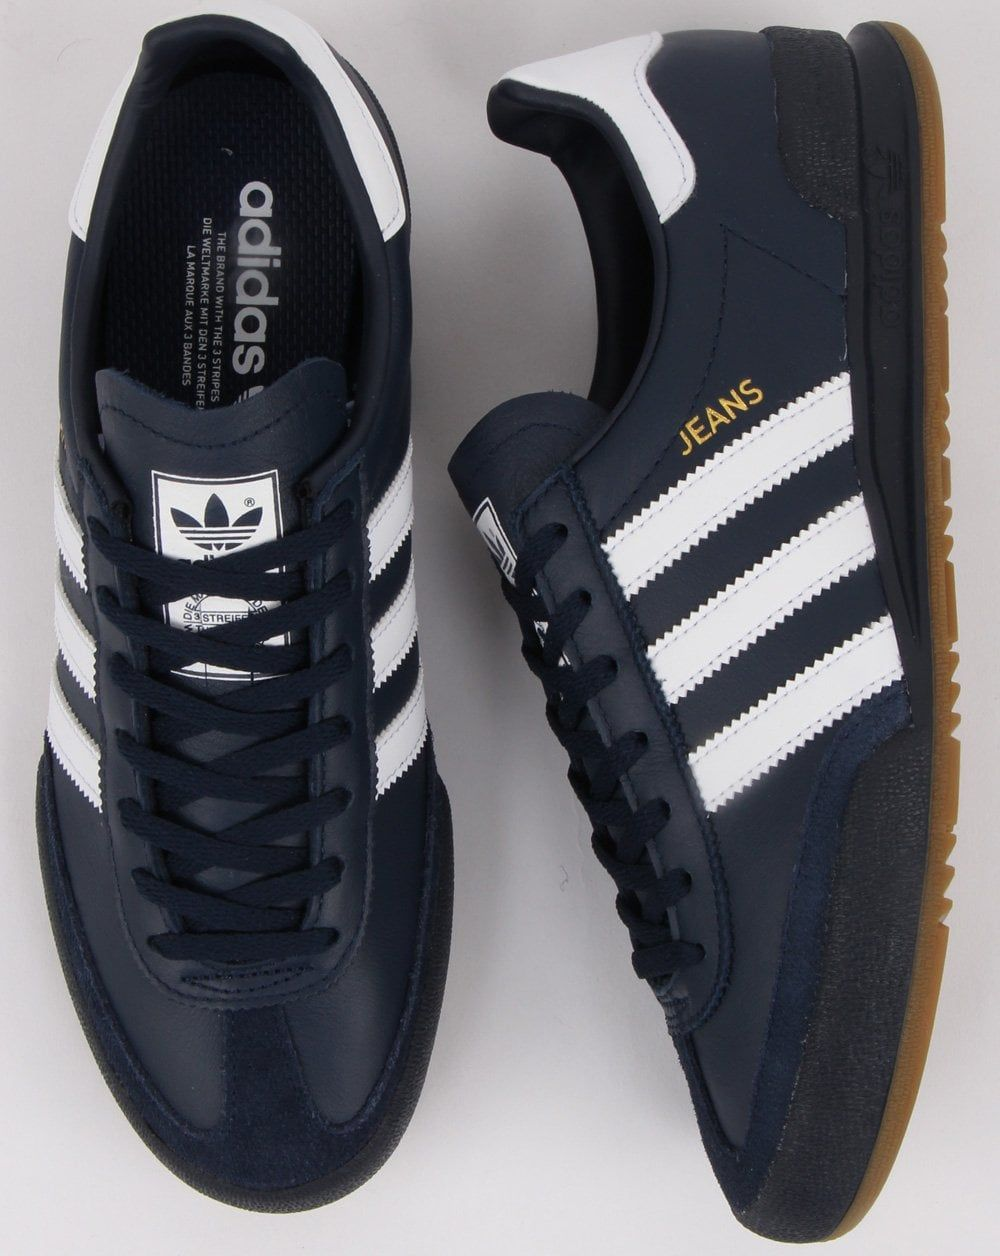 Hacer un nombre vapor calina  Adidas Jeans Trainers Navy, white, leather | 80s casual ... adidas jeans  trainers leather … | Adidas originals jeans, Adidas jeans trainers, Adidas  outfit women